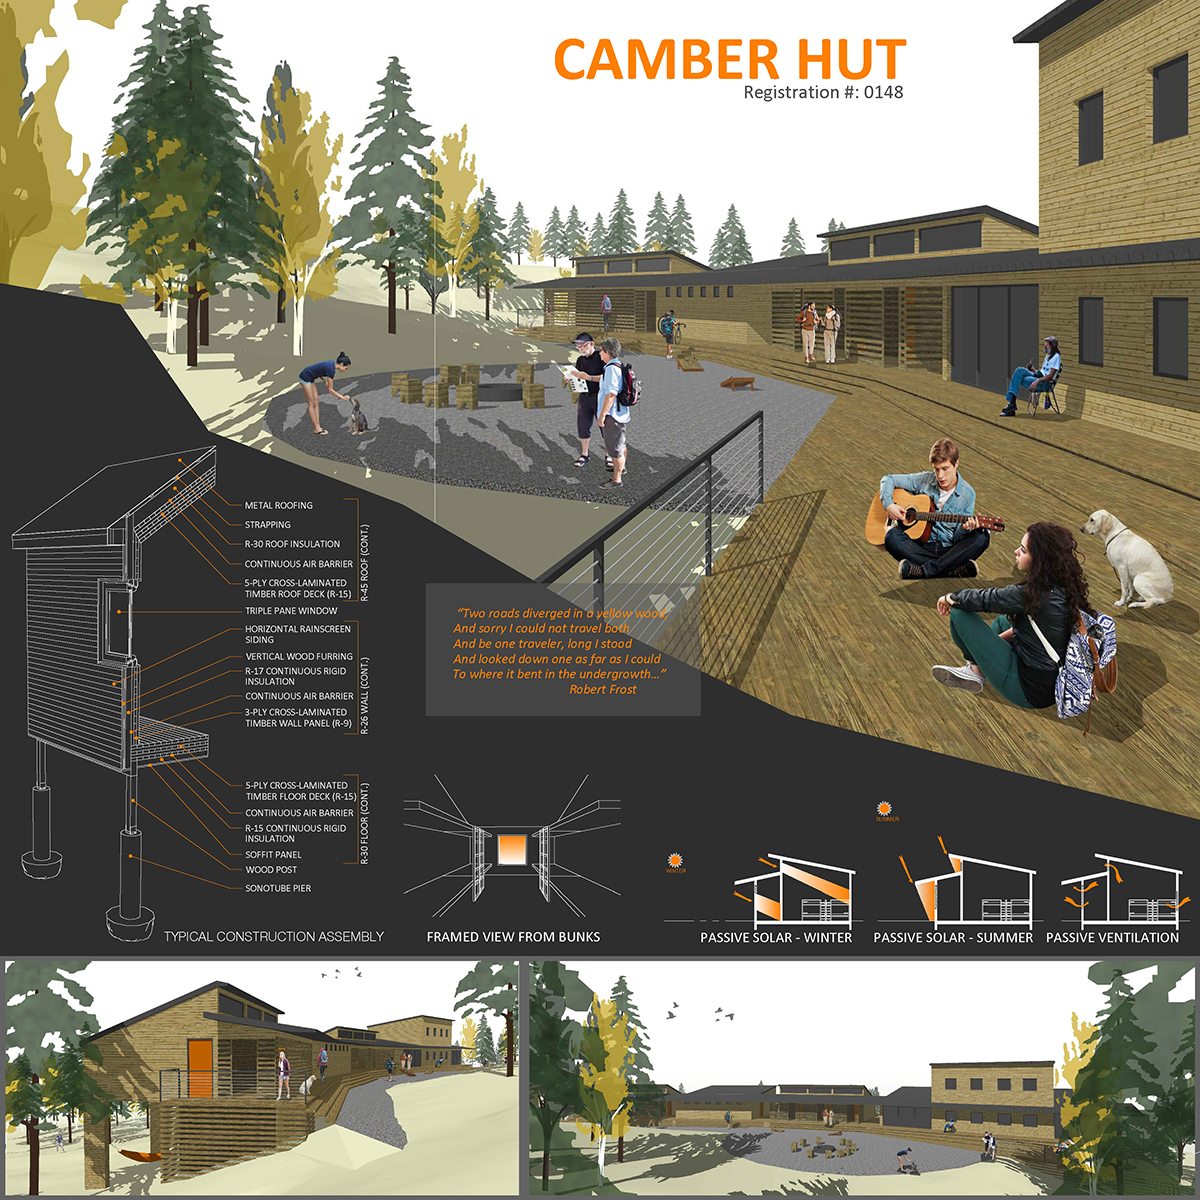 Camber_Hut_Board_Left_Page_1.jpg